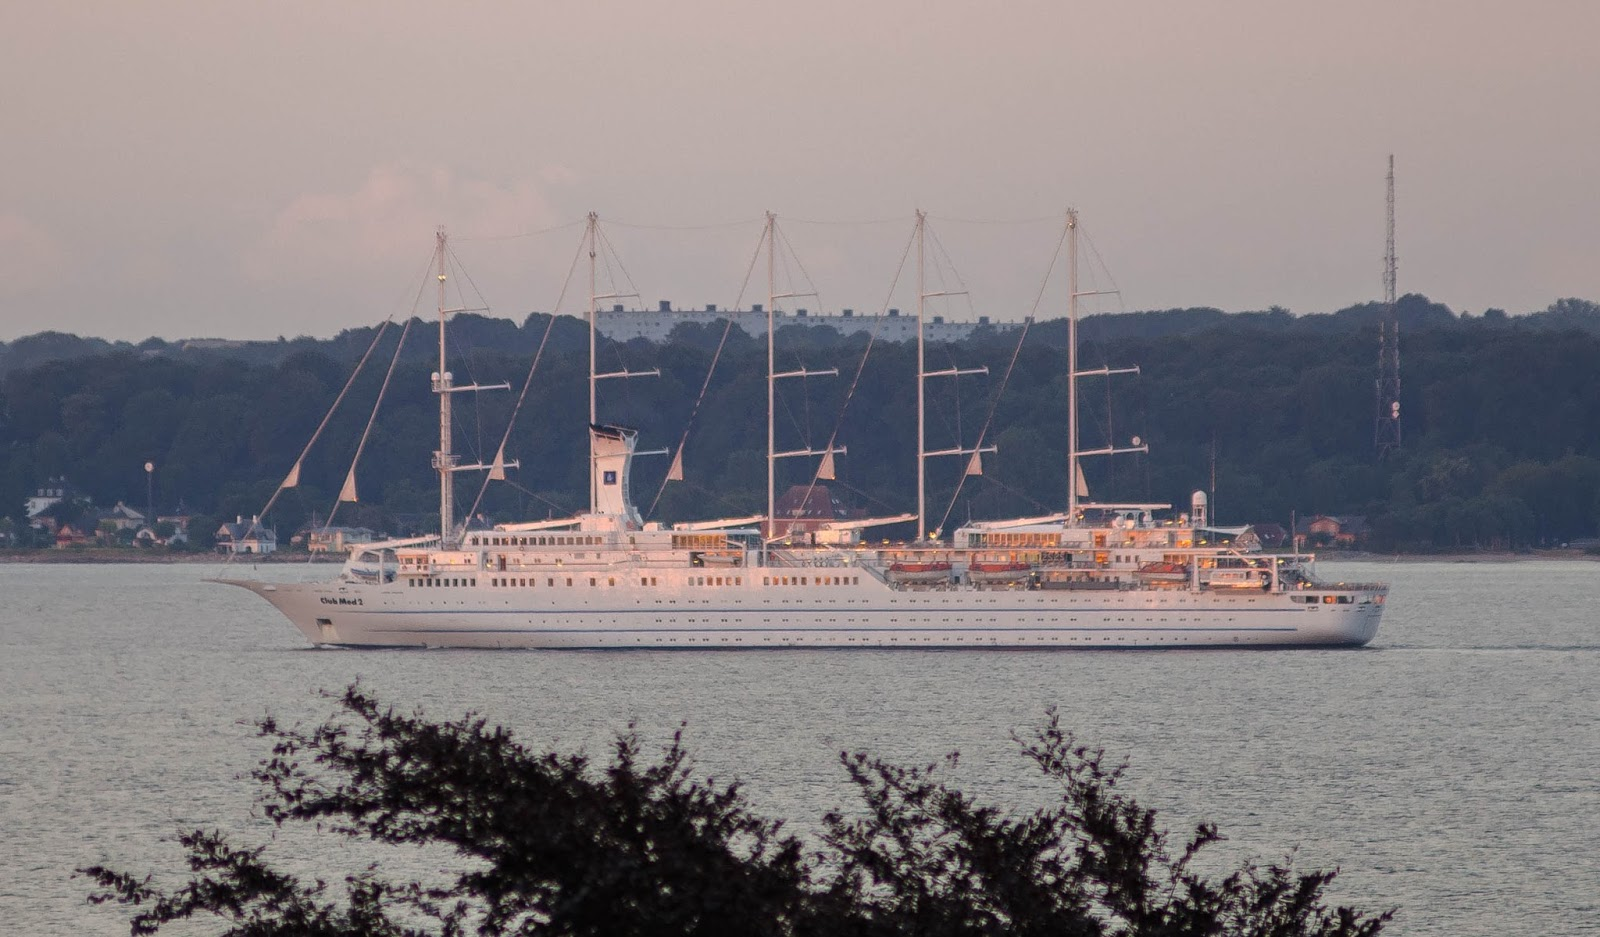 The Things I Enjoy The Five-masted Sailing Cruise Ship Club Med 2 On Its First Visit To U00d8resund